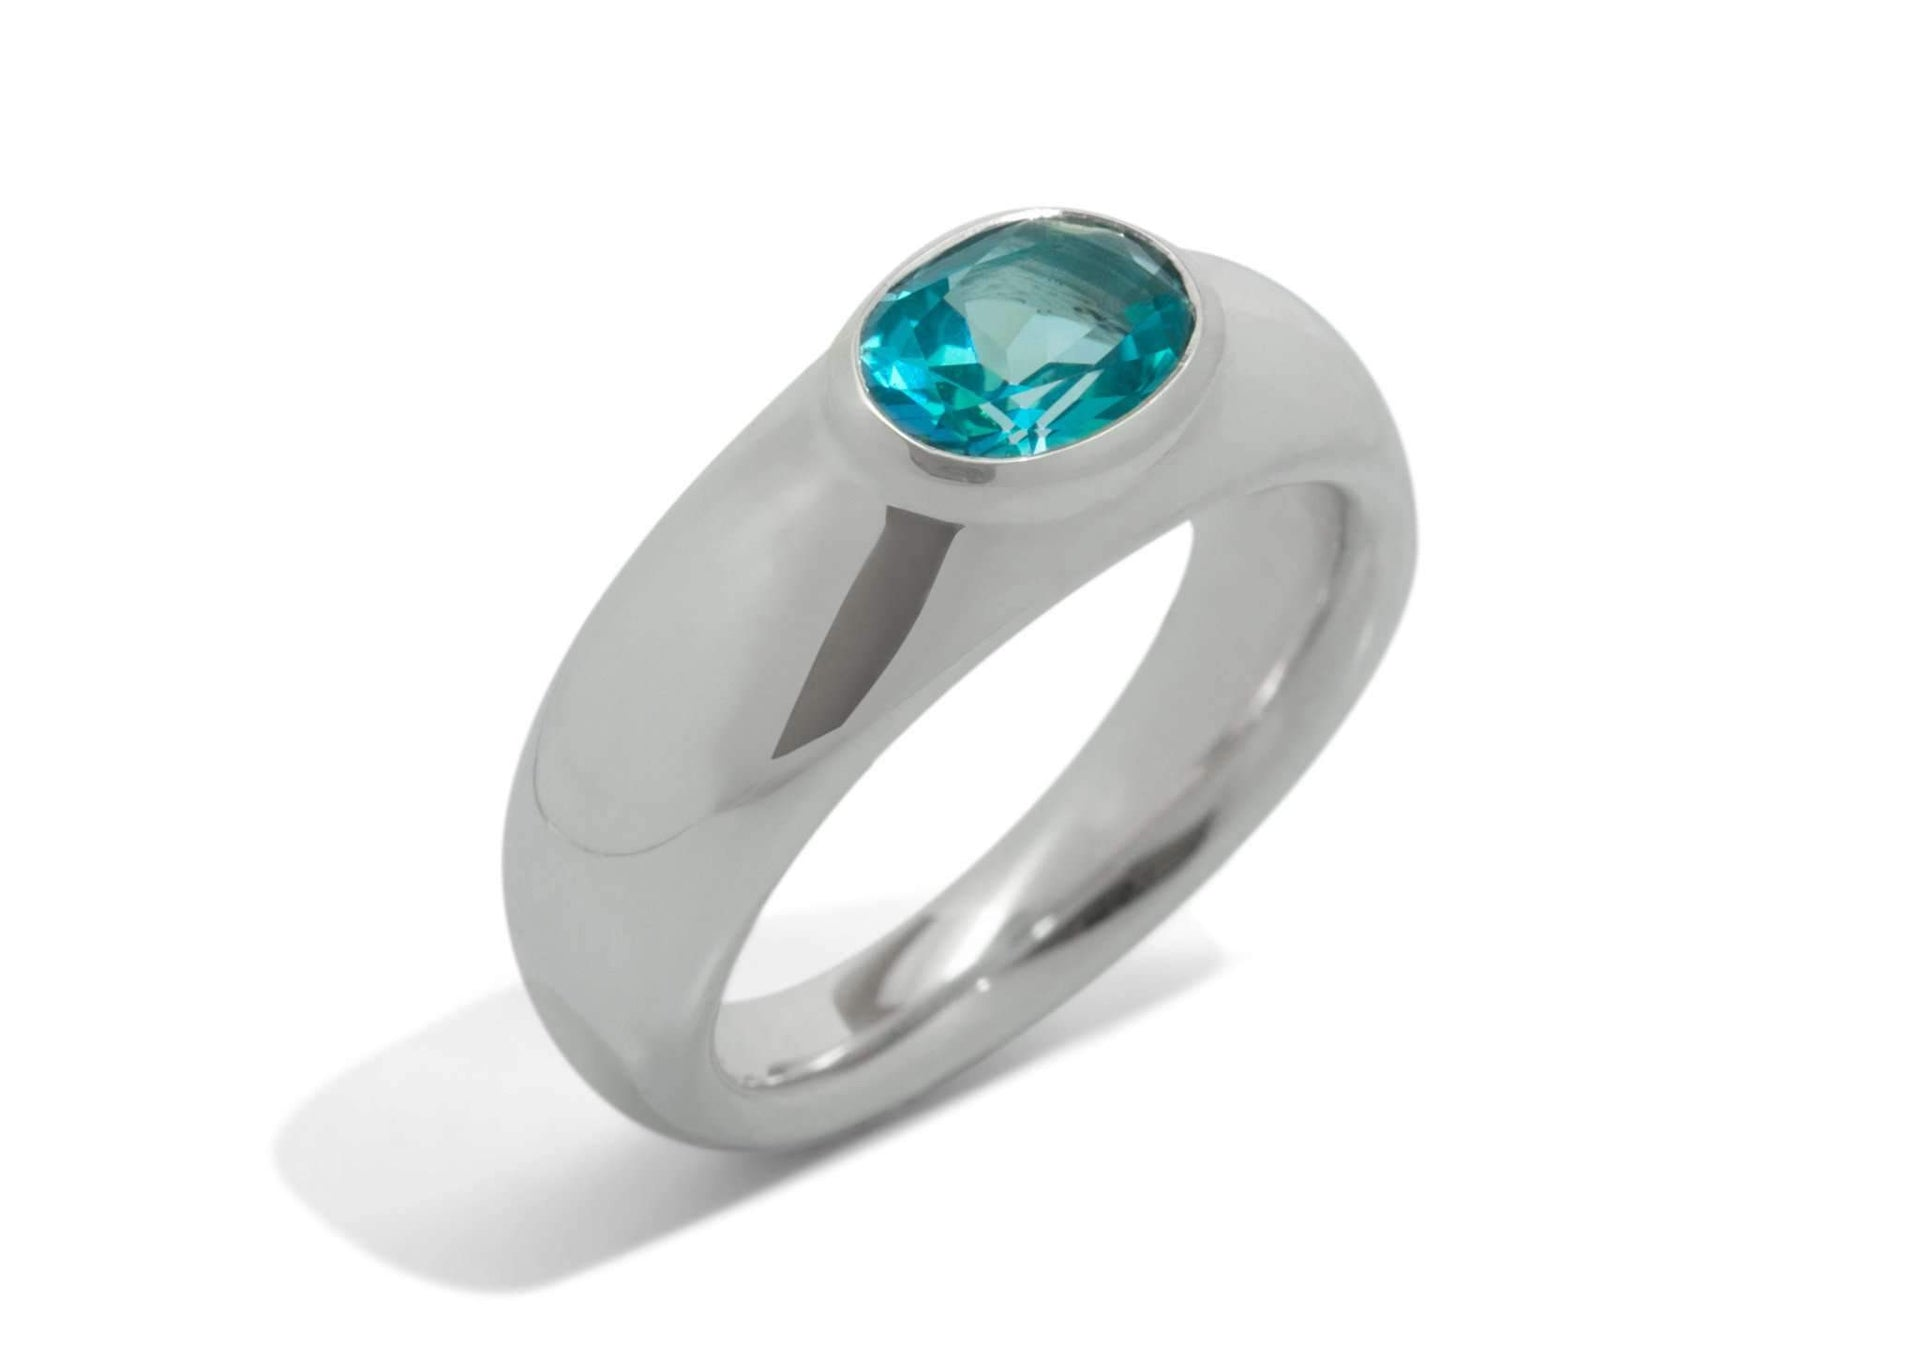 Splendid Gemstone Ring, Sterling Silver